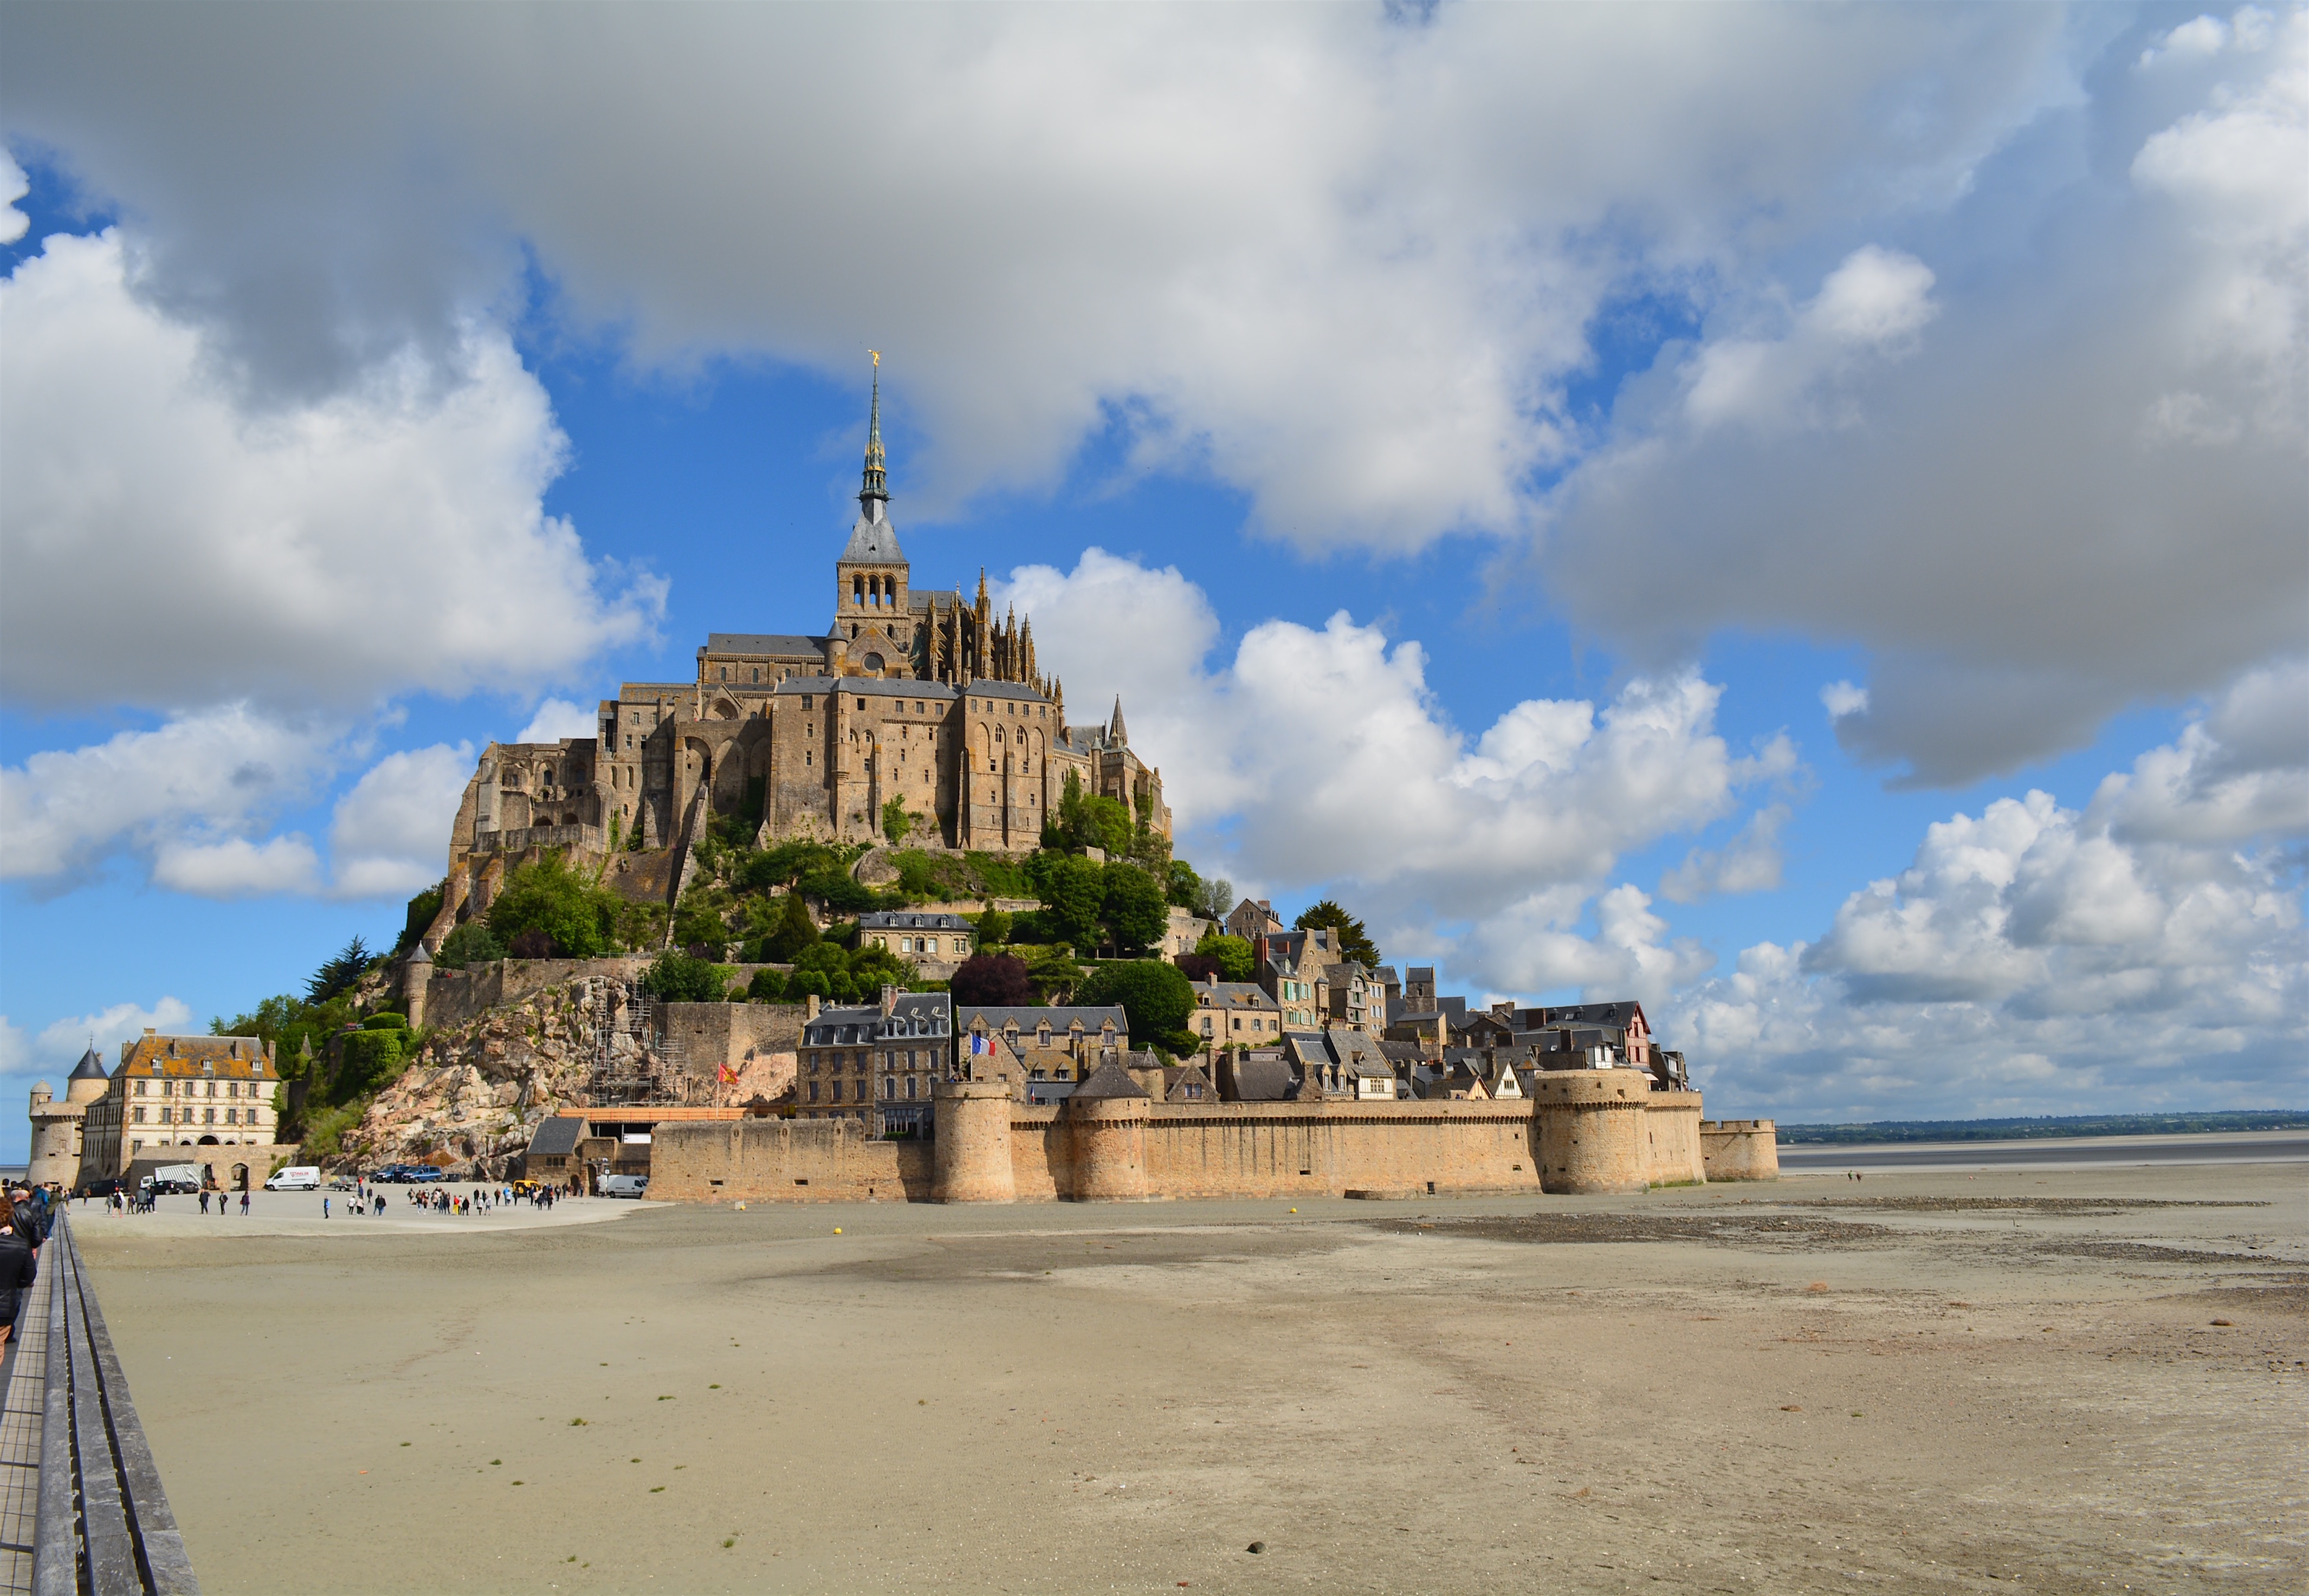 Le Mont Saint Michel   Magical and Picturesque Island at France's Normandy Coast